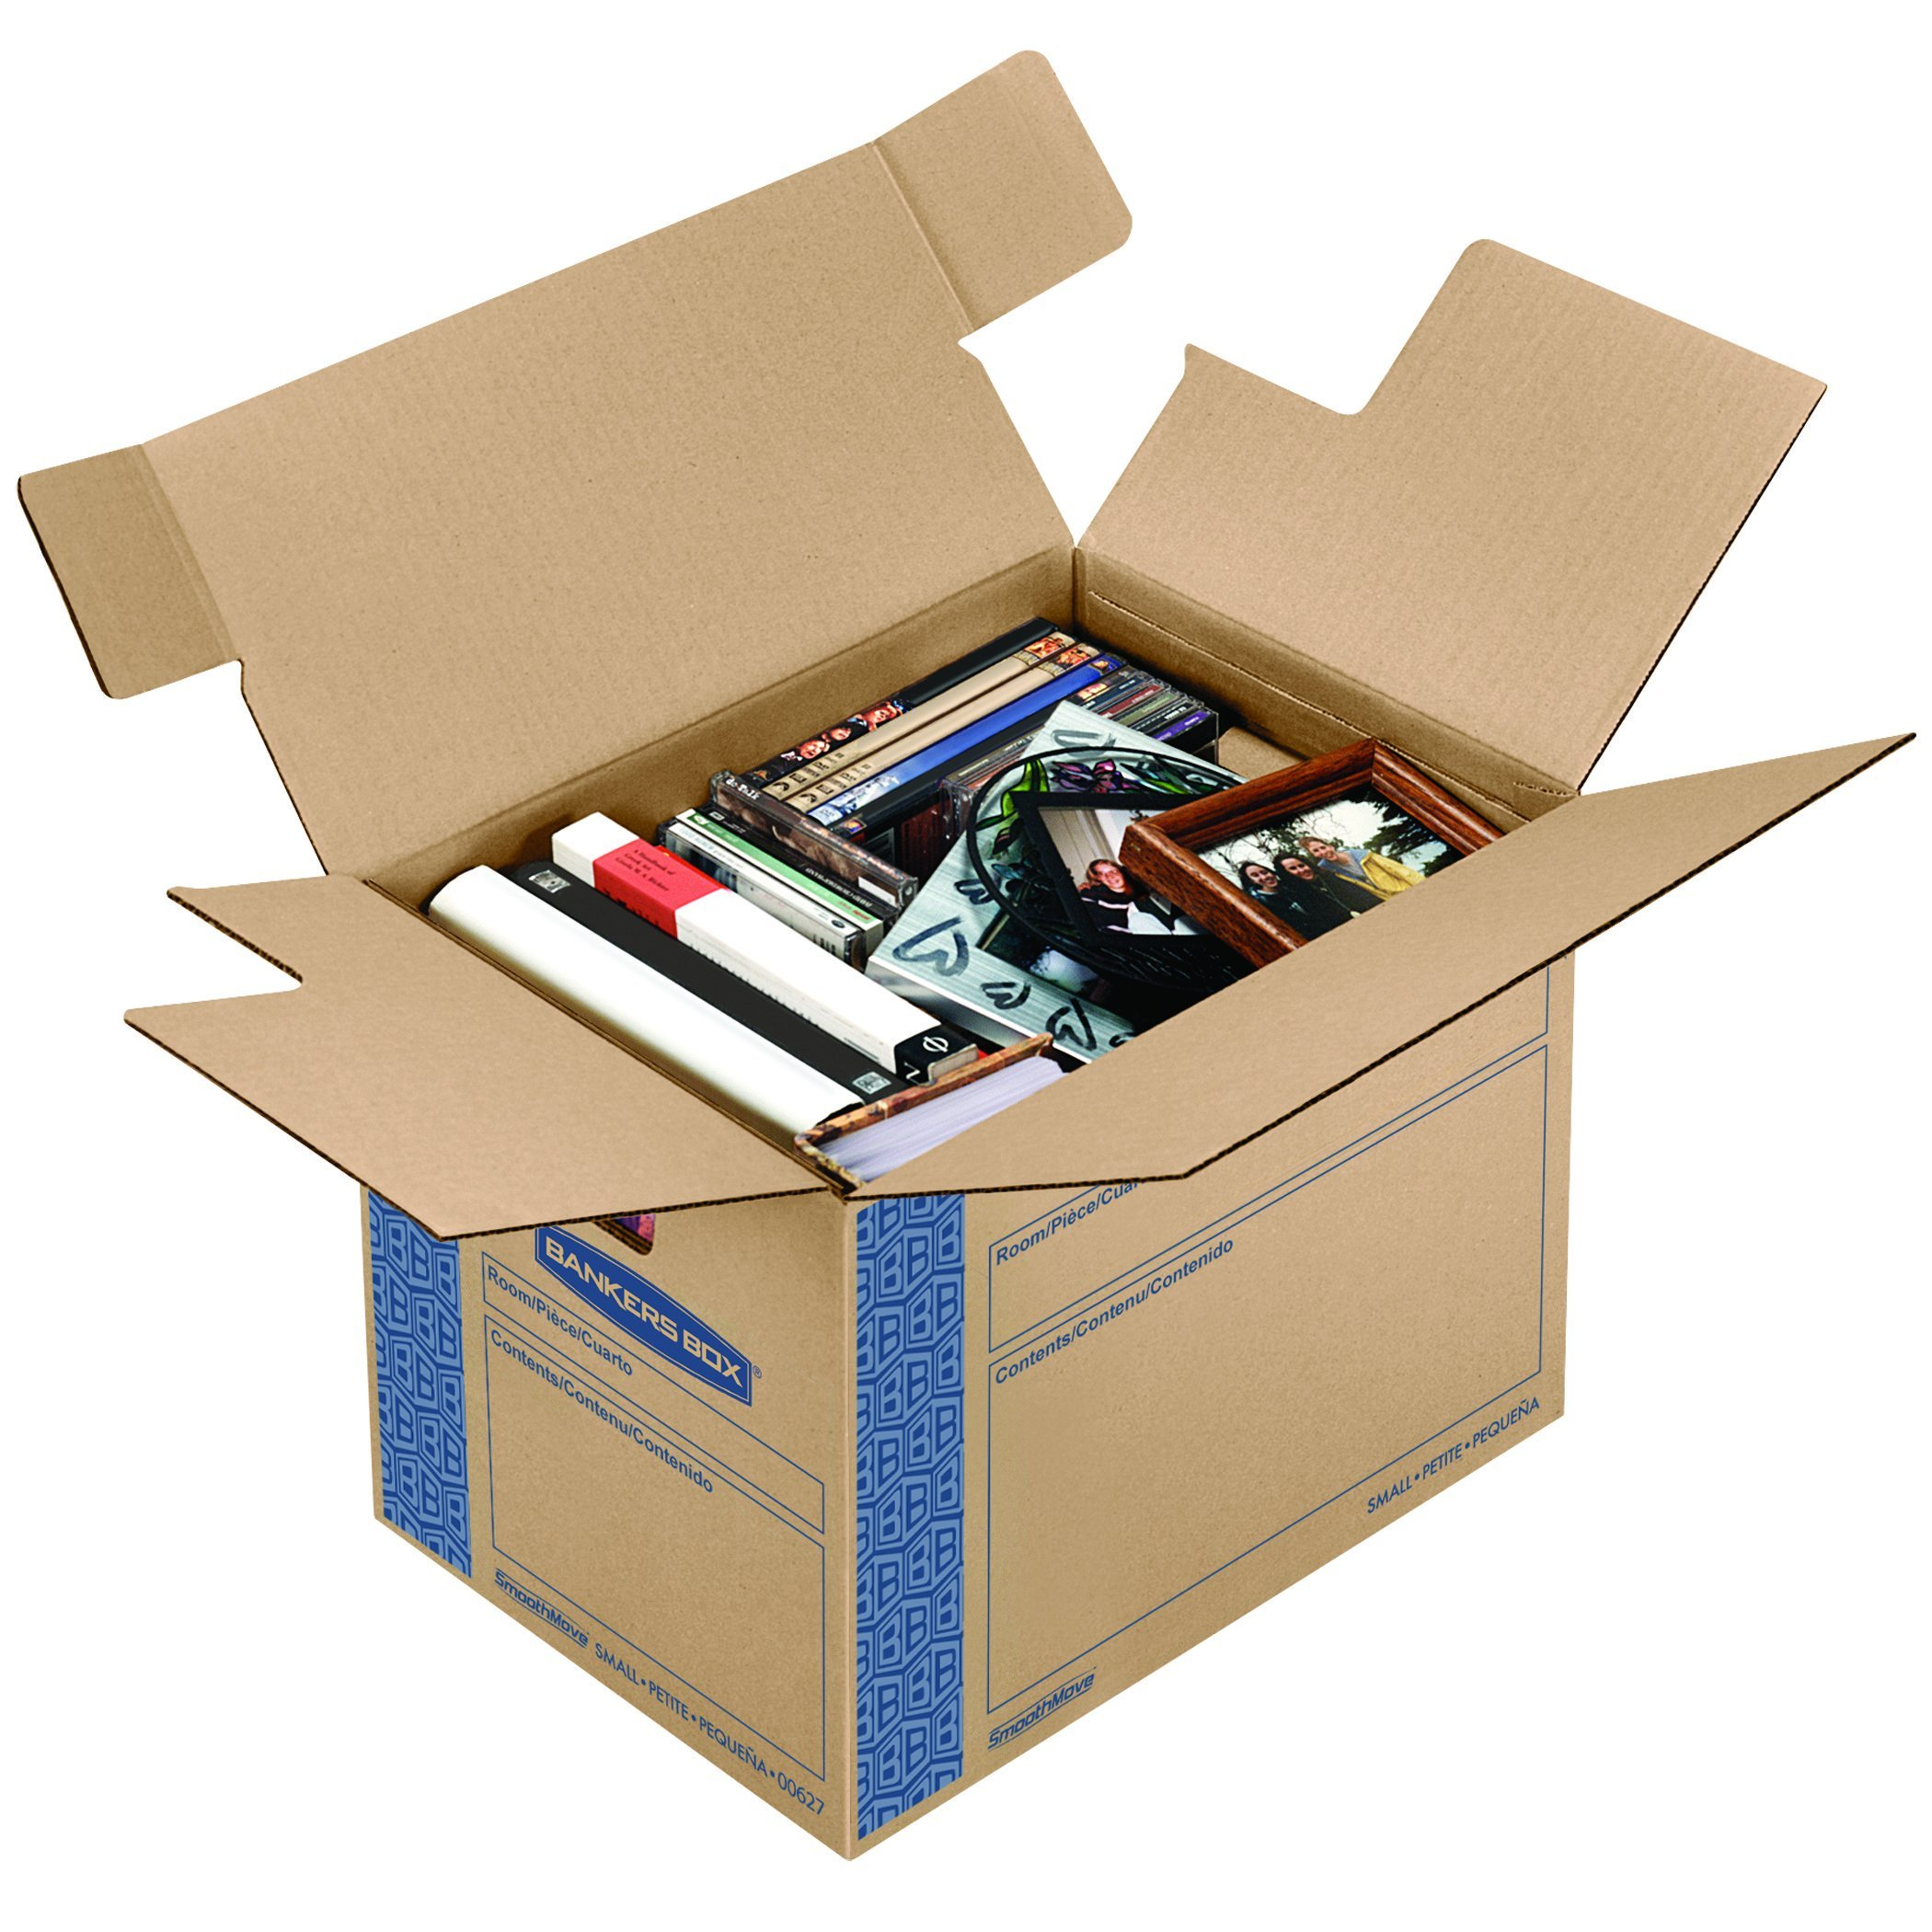 bankers box smoothmove prime moving boxes tape free and fast fold assembly 689789293515 ebay. Black Bedroom Furniture Sets. Home Design Ideas